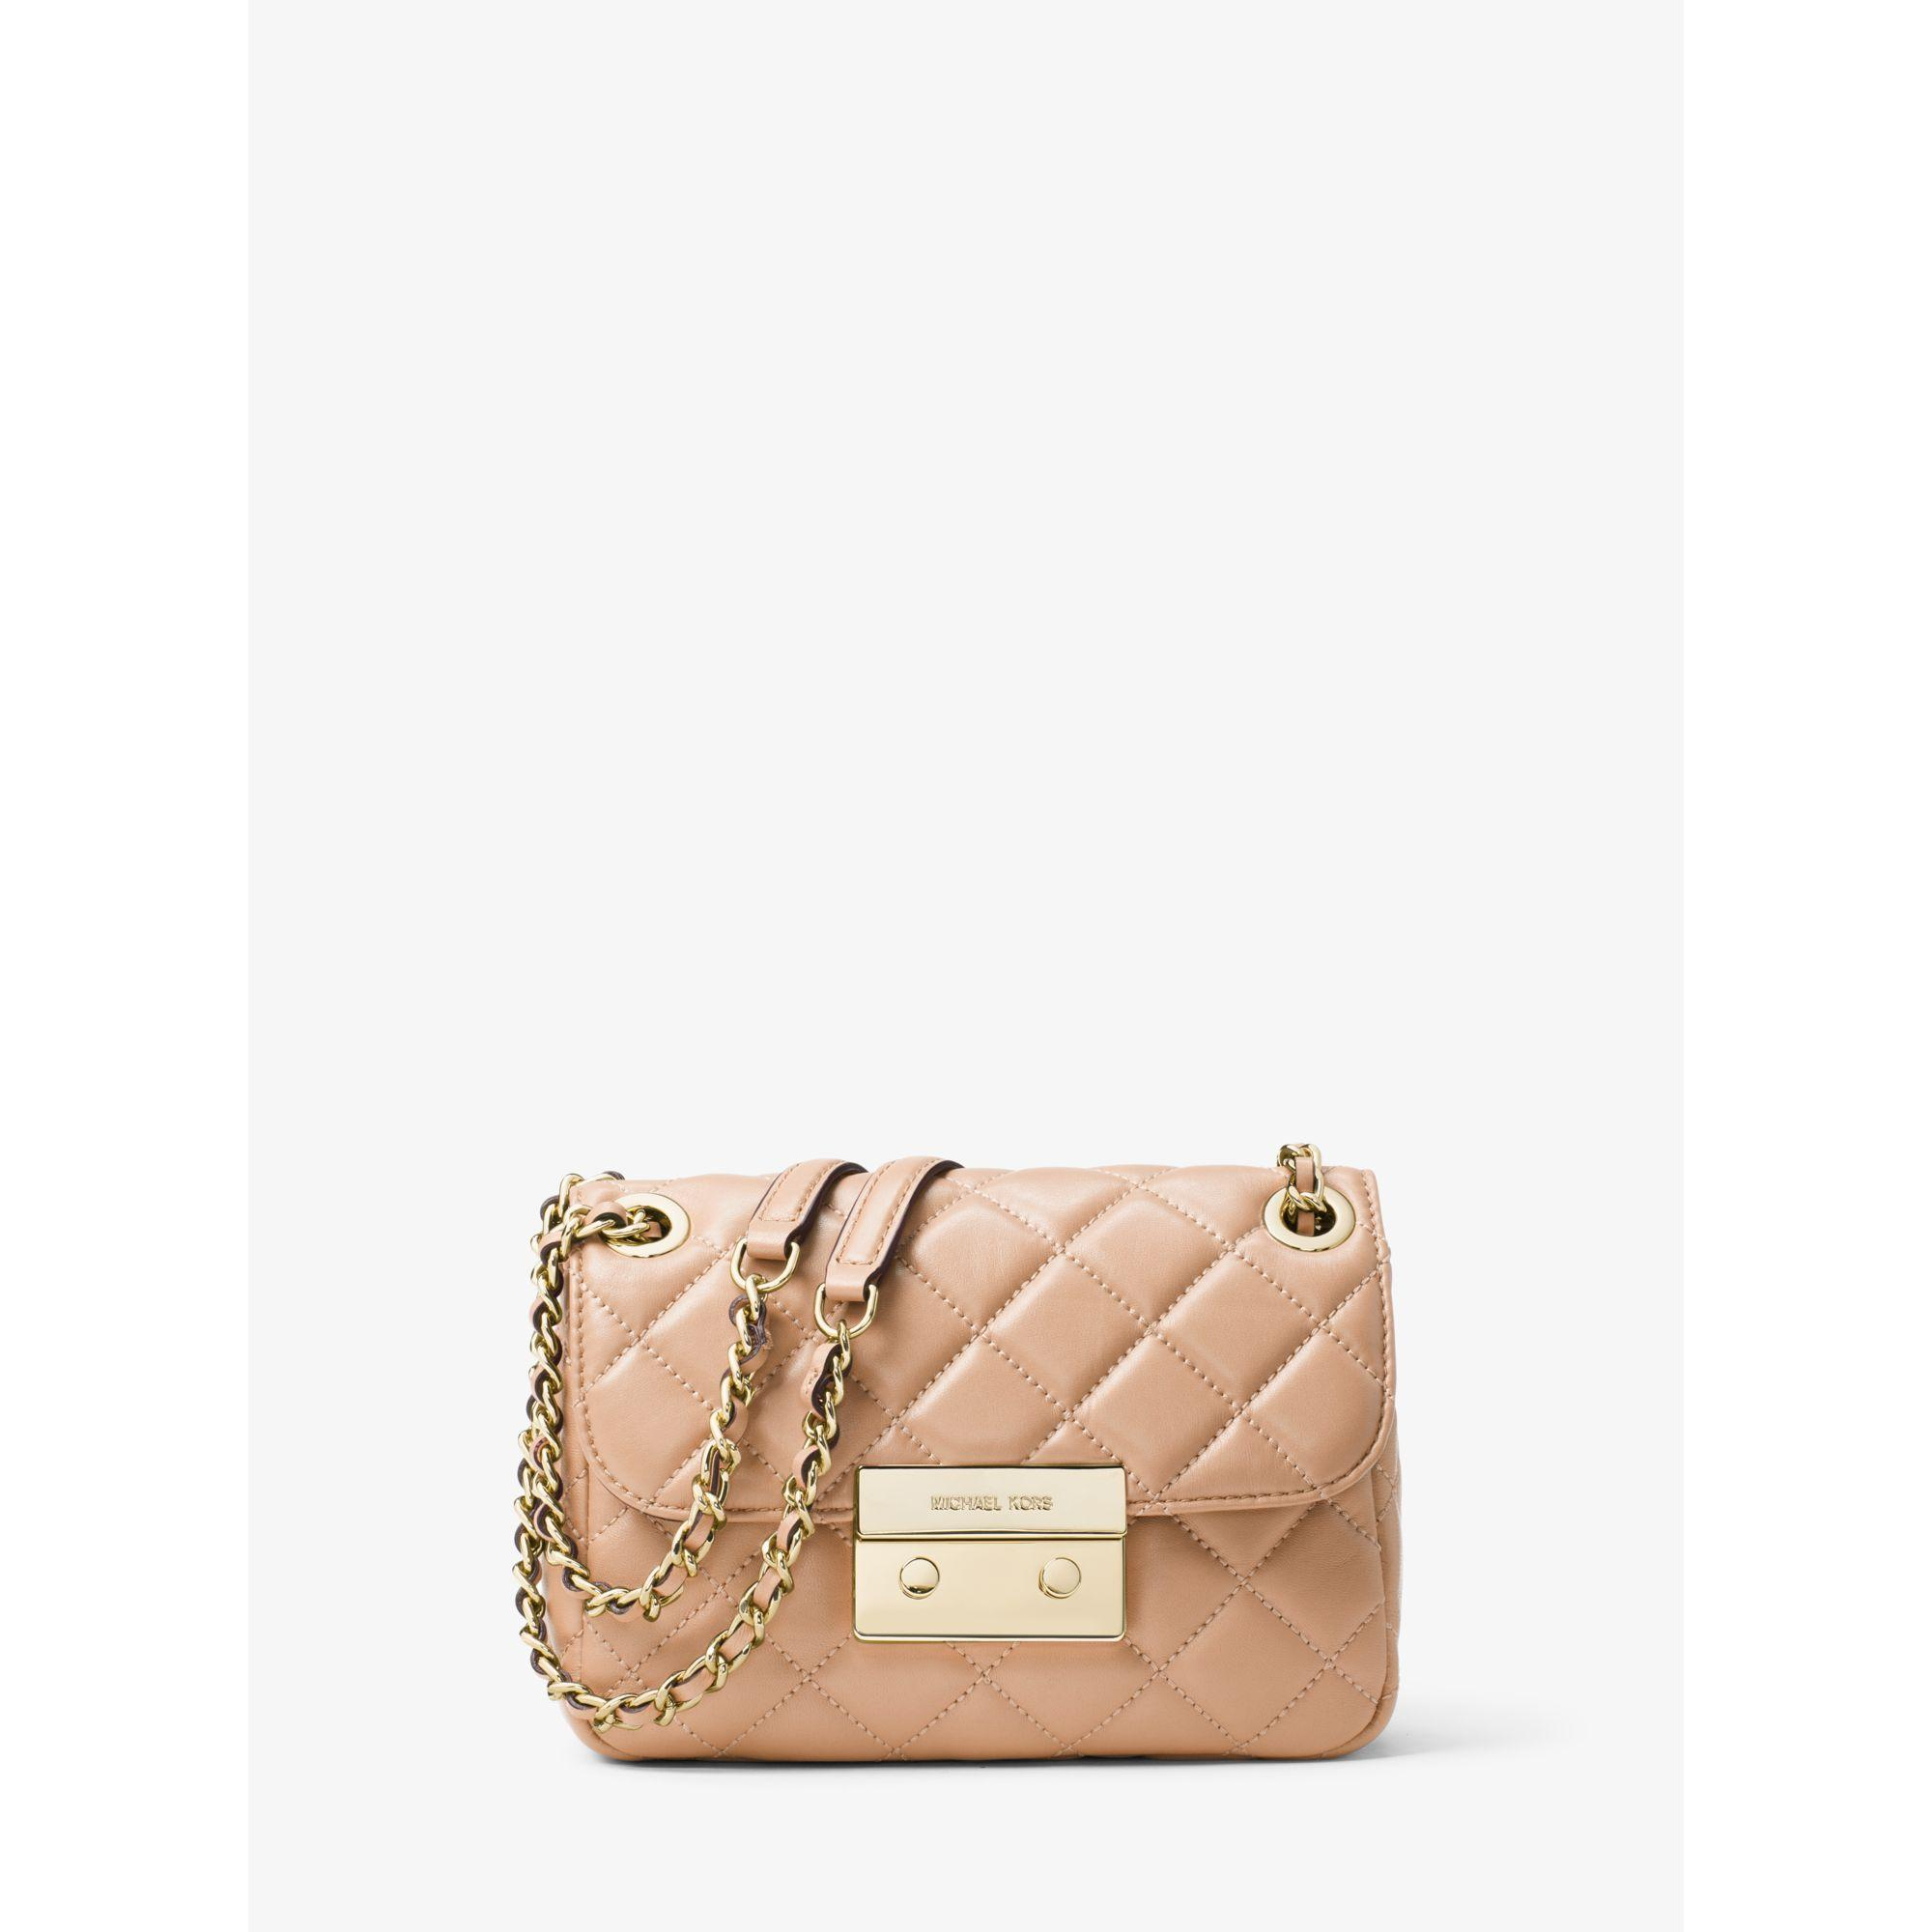 bd49a6c48a67d2 Michael Kors Sloan Small Quilted-Leather Shoulder Bag in Pink - Lyst